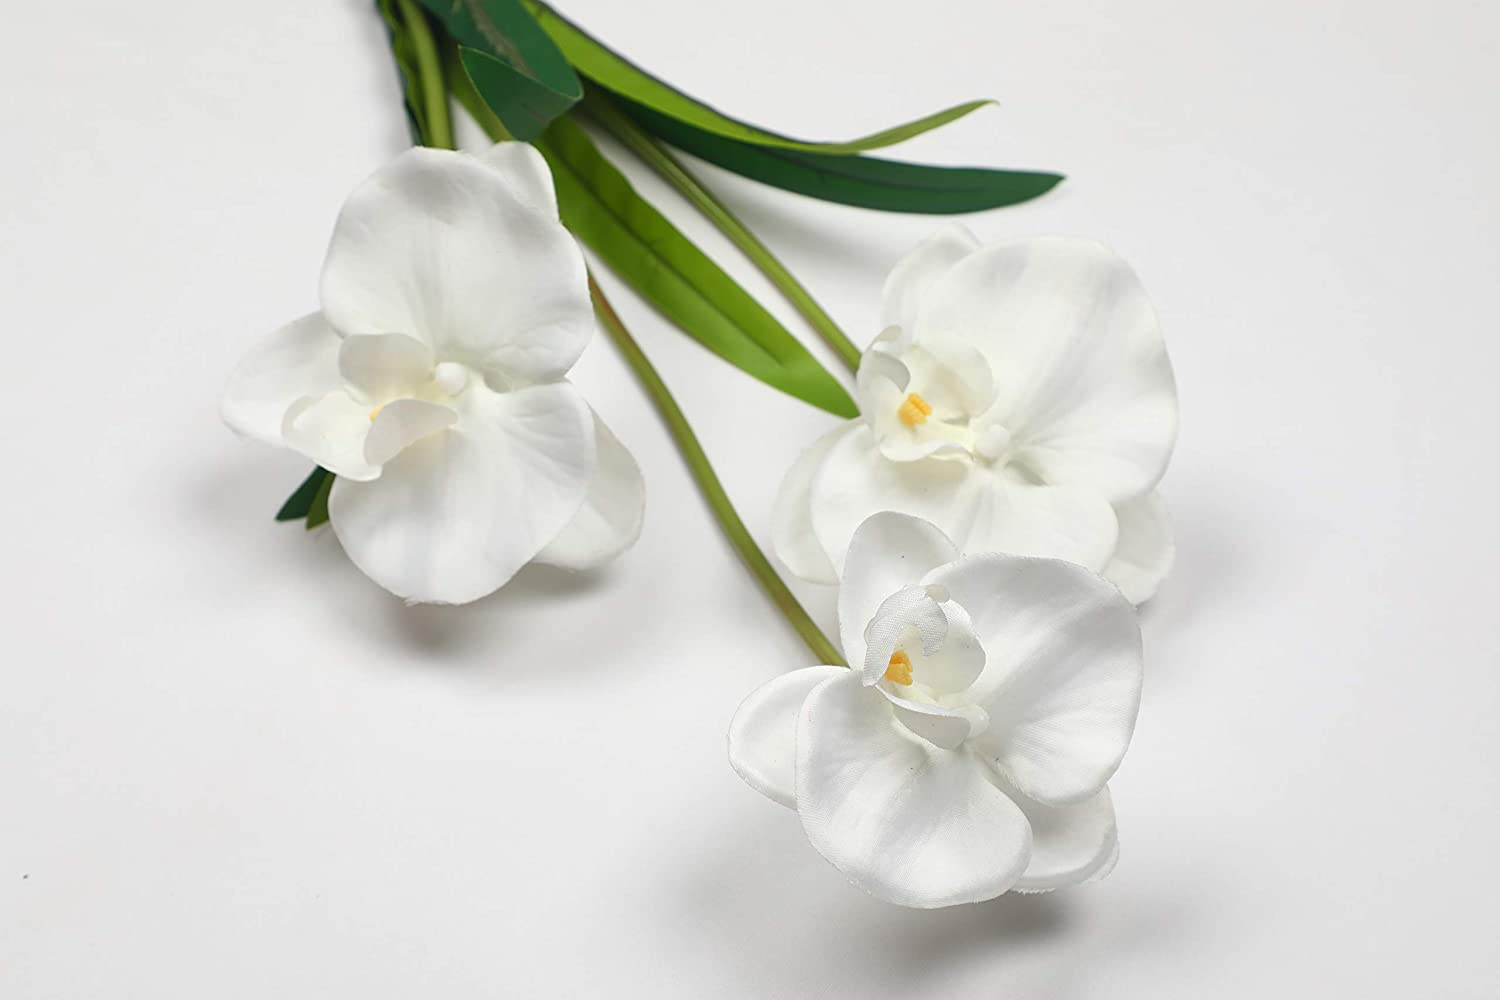 PolliNation Stunning White Orchid Artificial Flower Bunch for Home Decoration (Pack of 1, 21 INCH) - Artificial Flowers & Plants - PolliNation